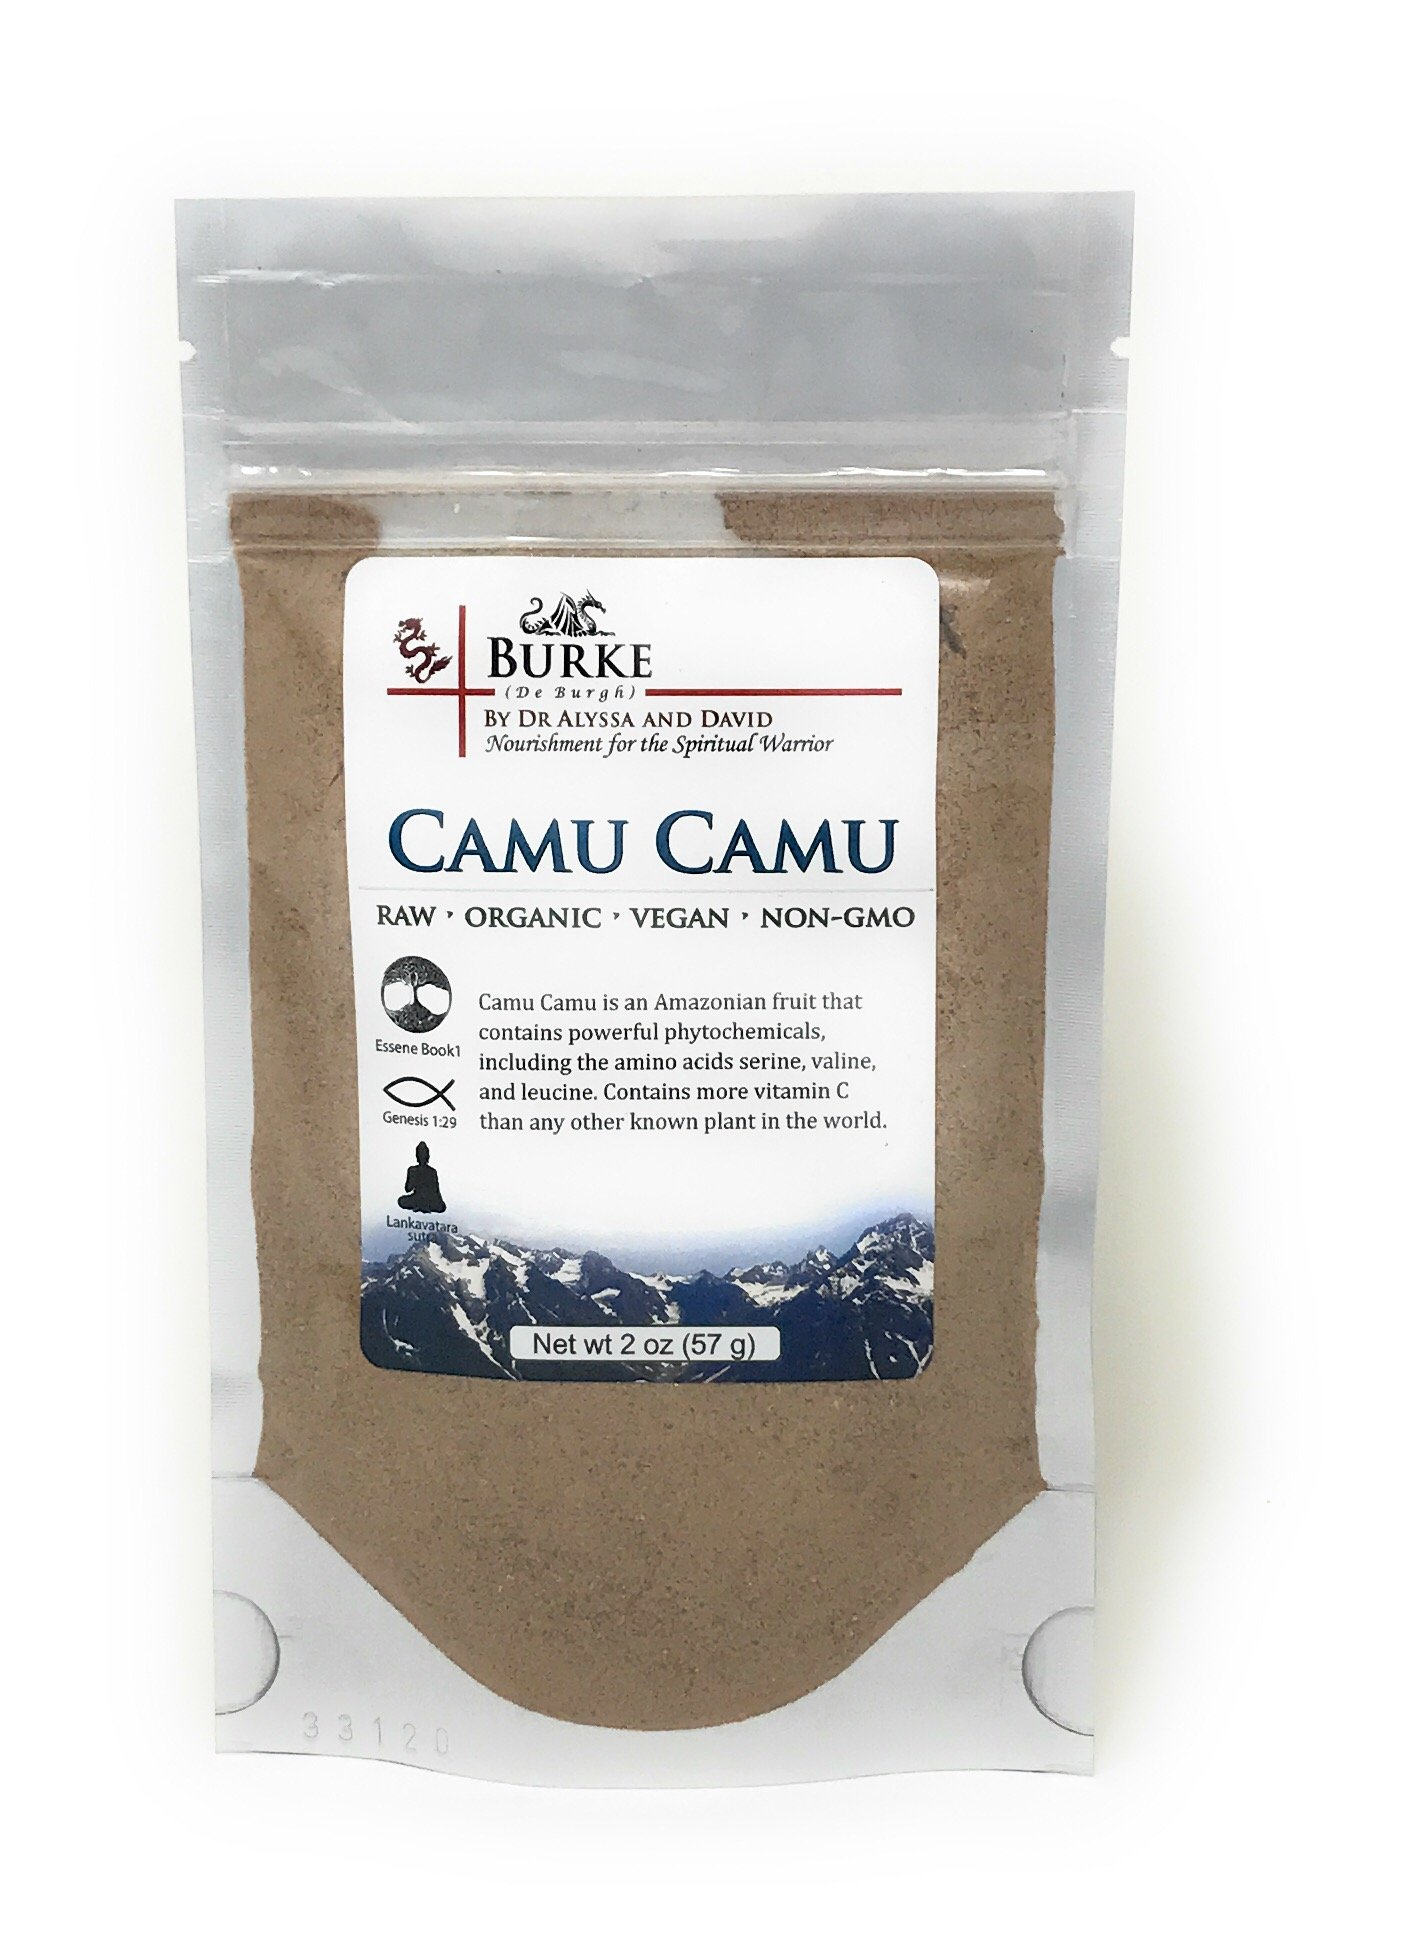 Camu Camu Powder 2 oz. (57 g) by Burke Superfoods (Image #1)